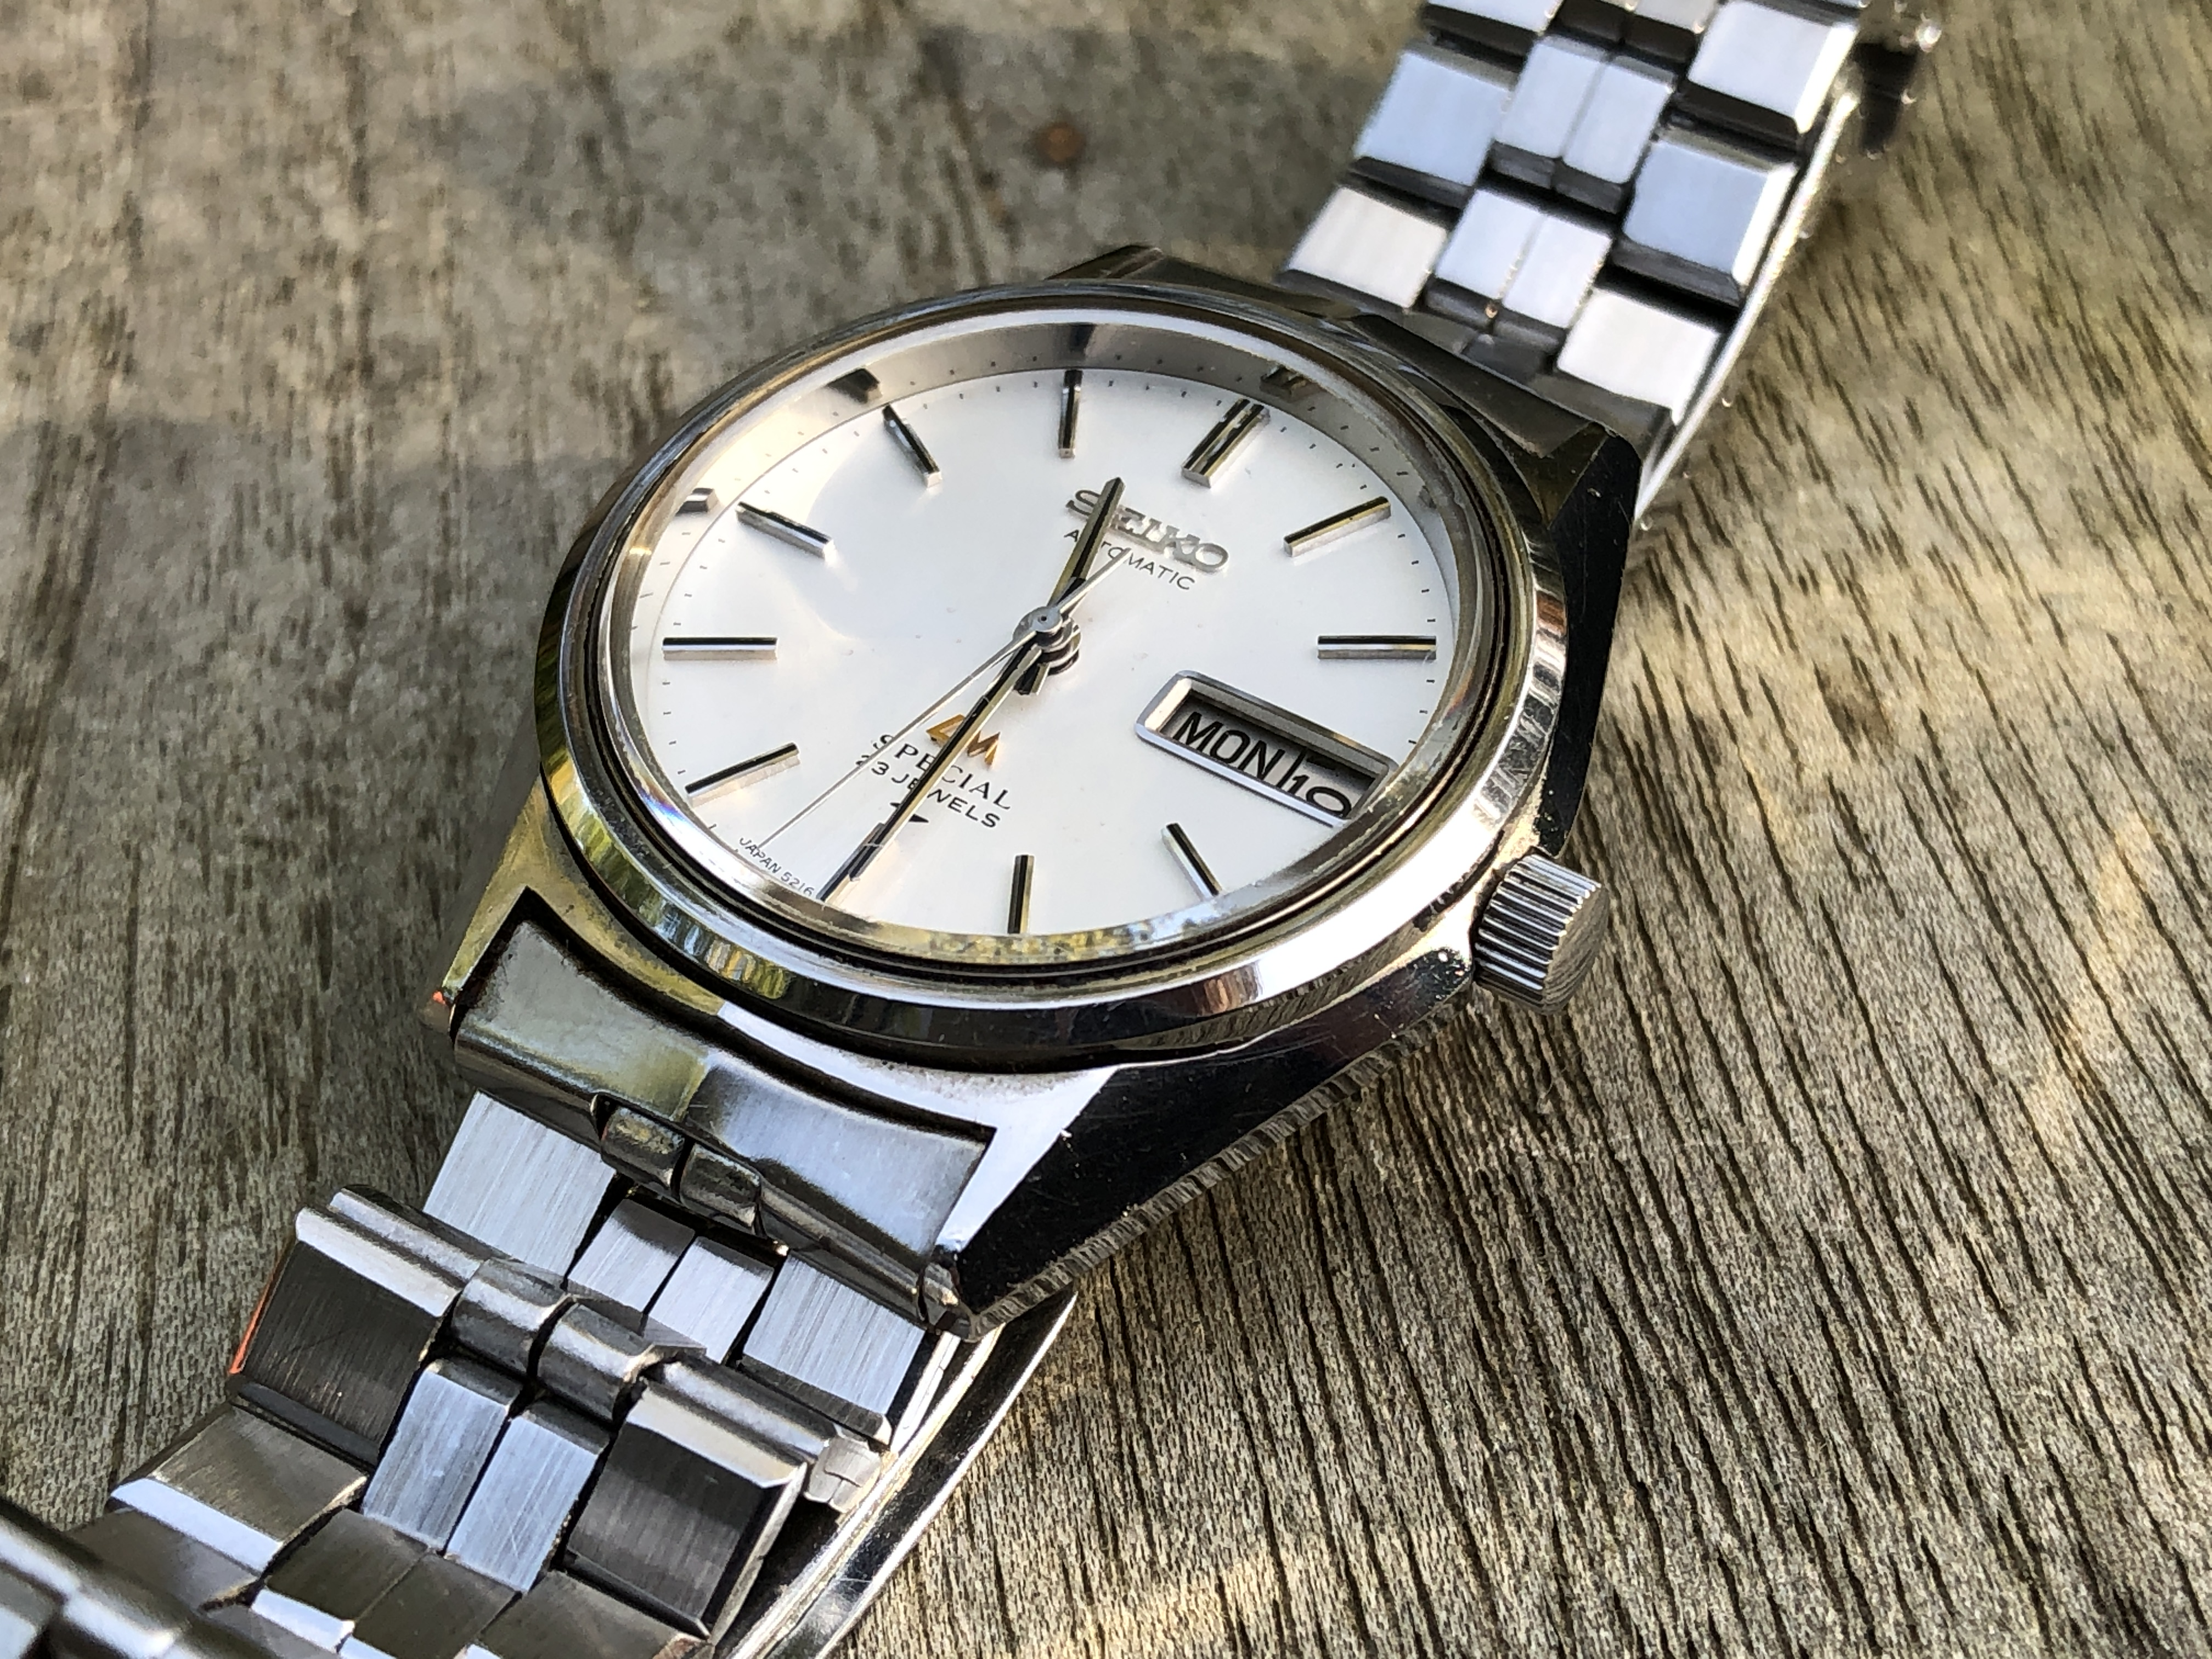 Seiko Lord -Matic Special 5216-6050 (Sold)